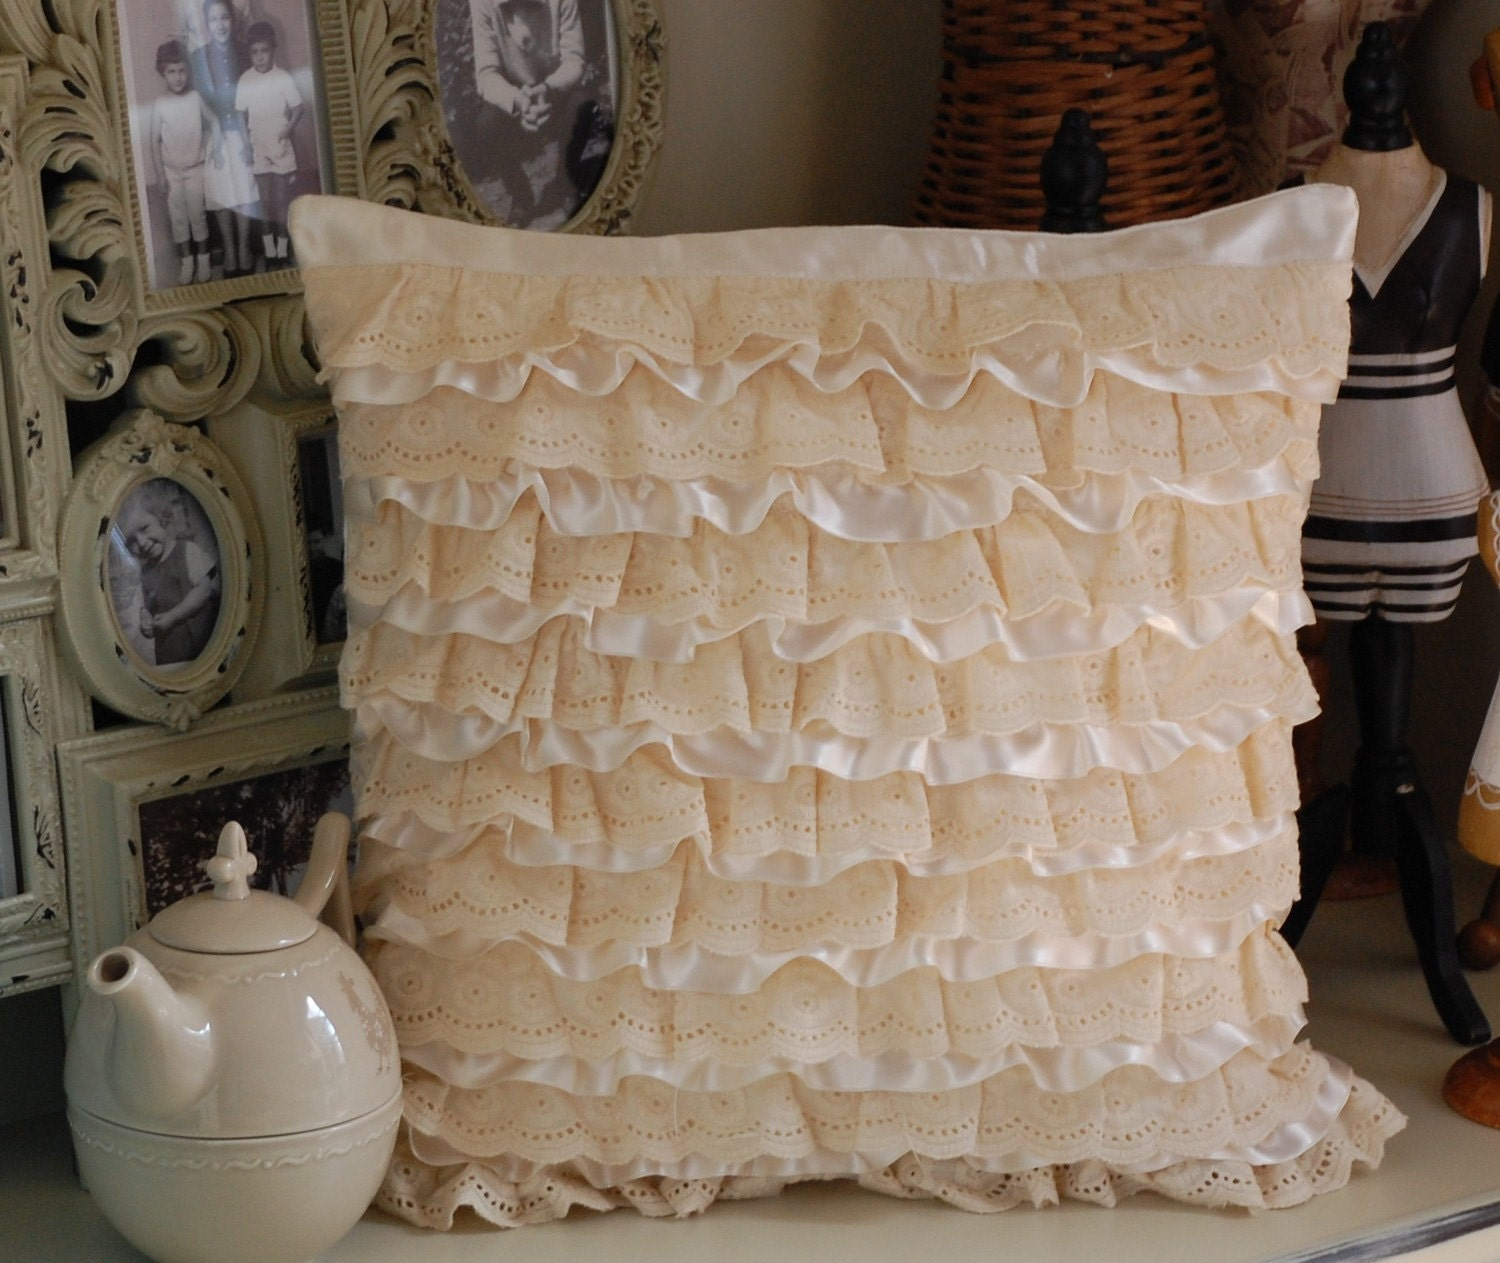 Ruffle pillow cover